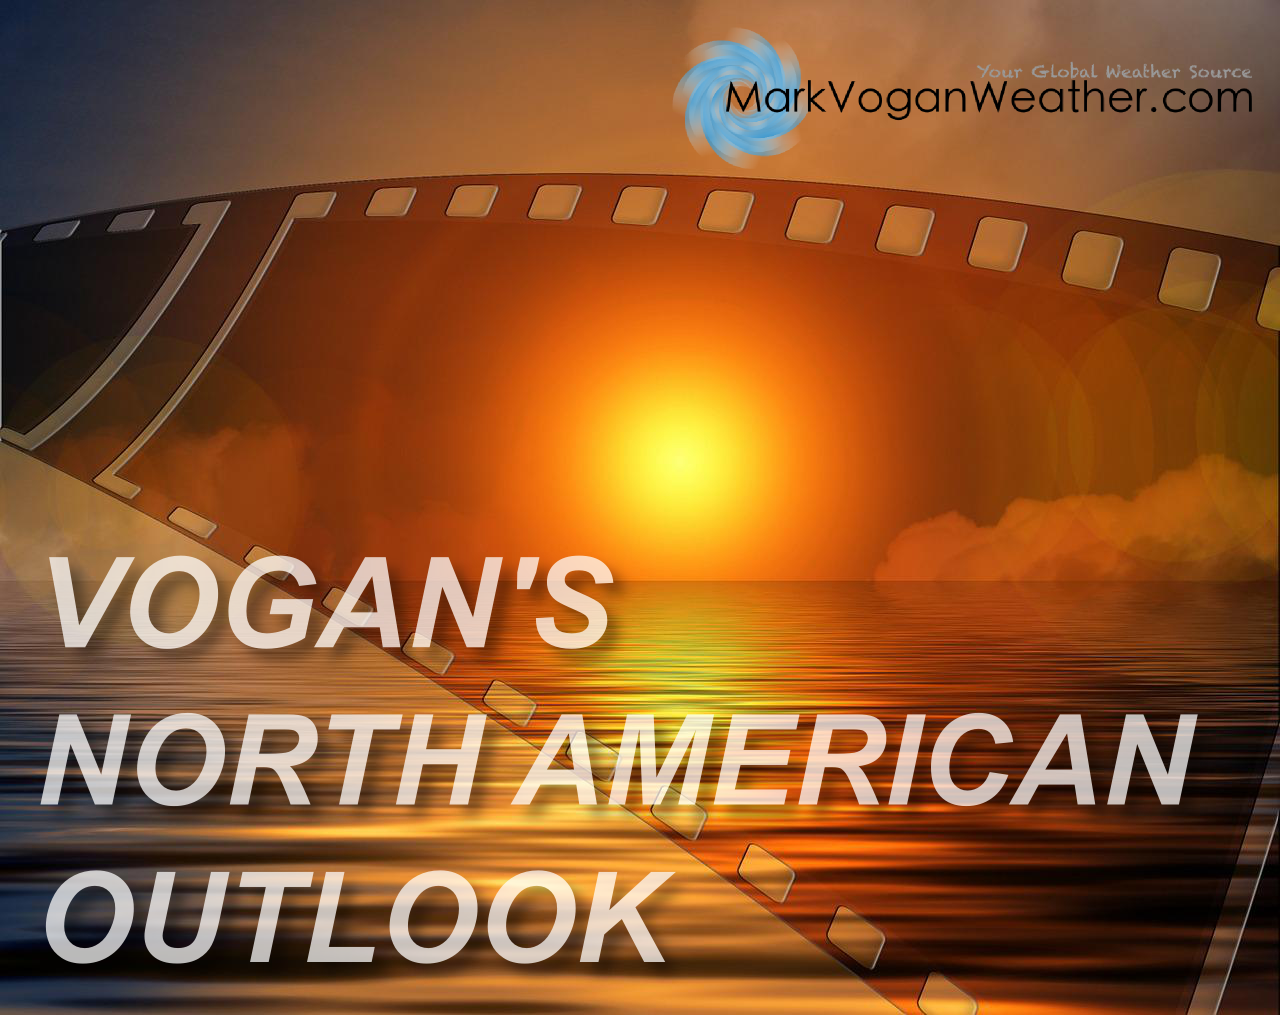 TUE 21 OCT: VOGAN'S NORTH AMERICAN OUTLOOK